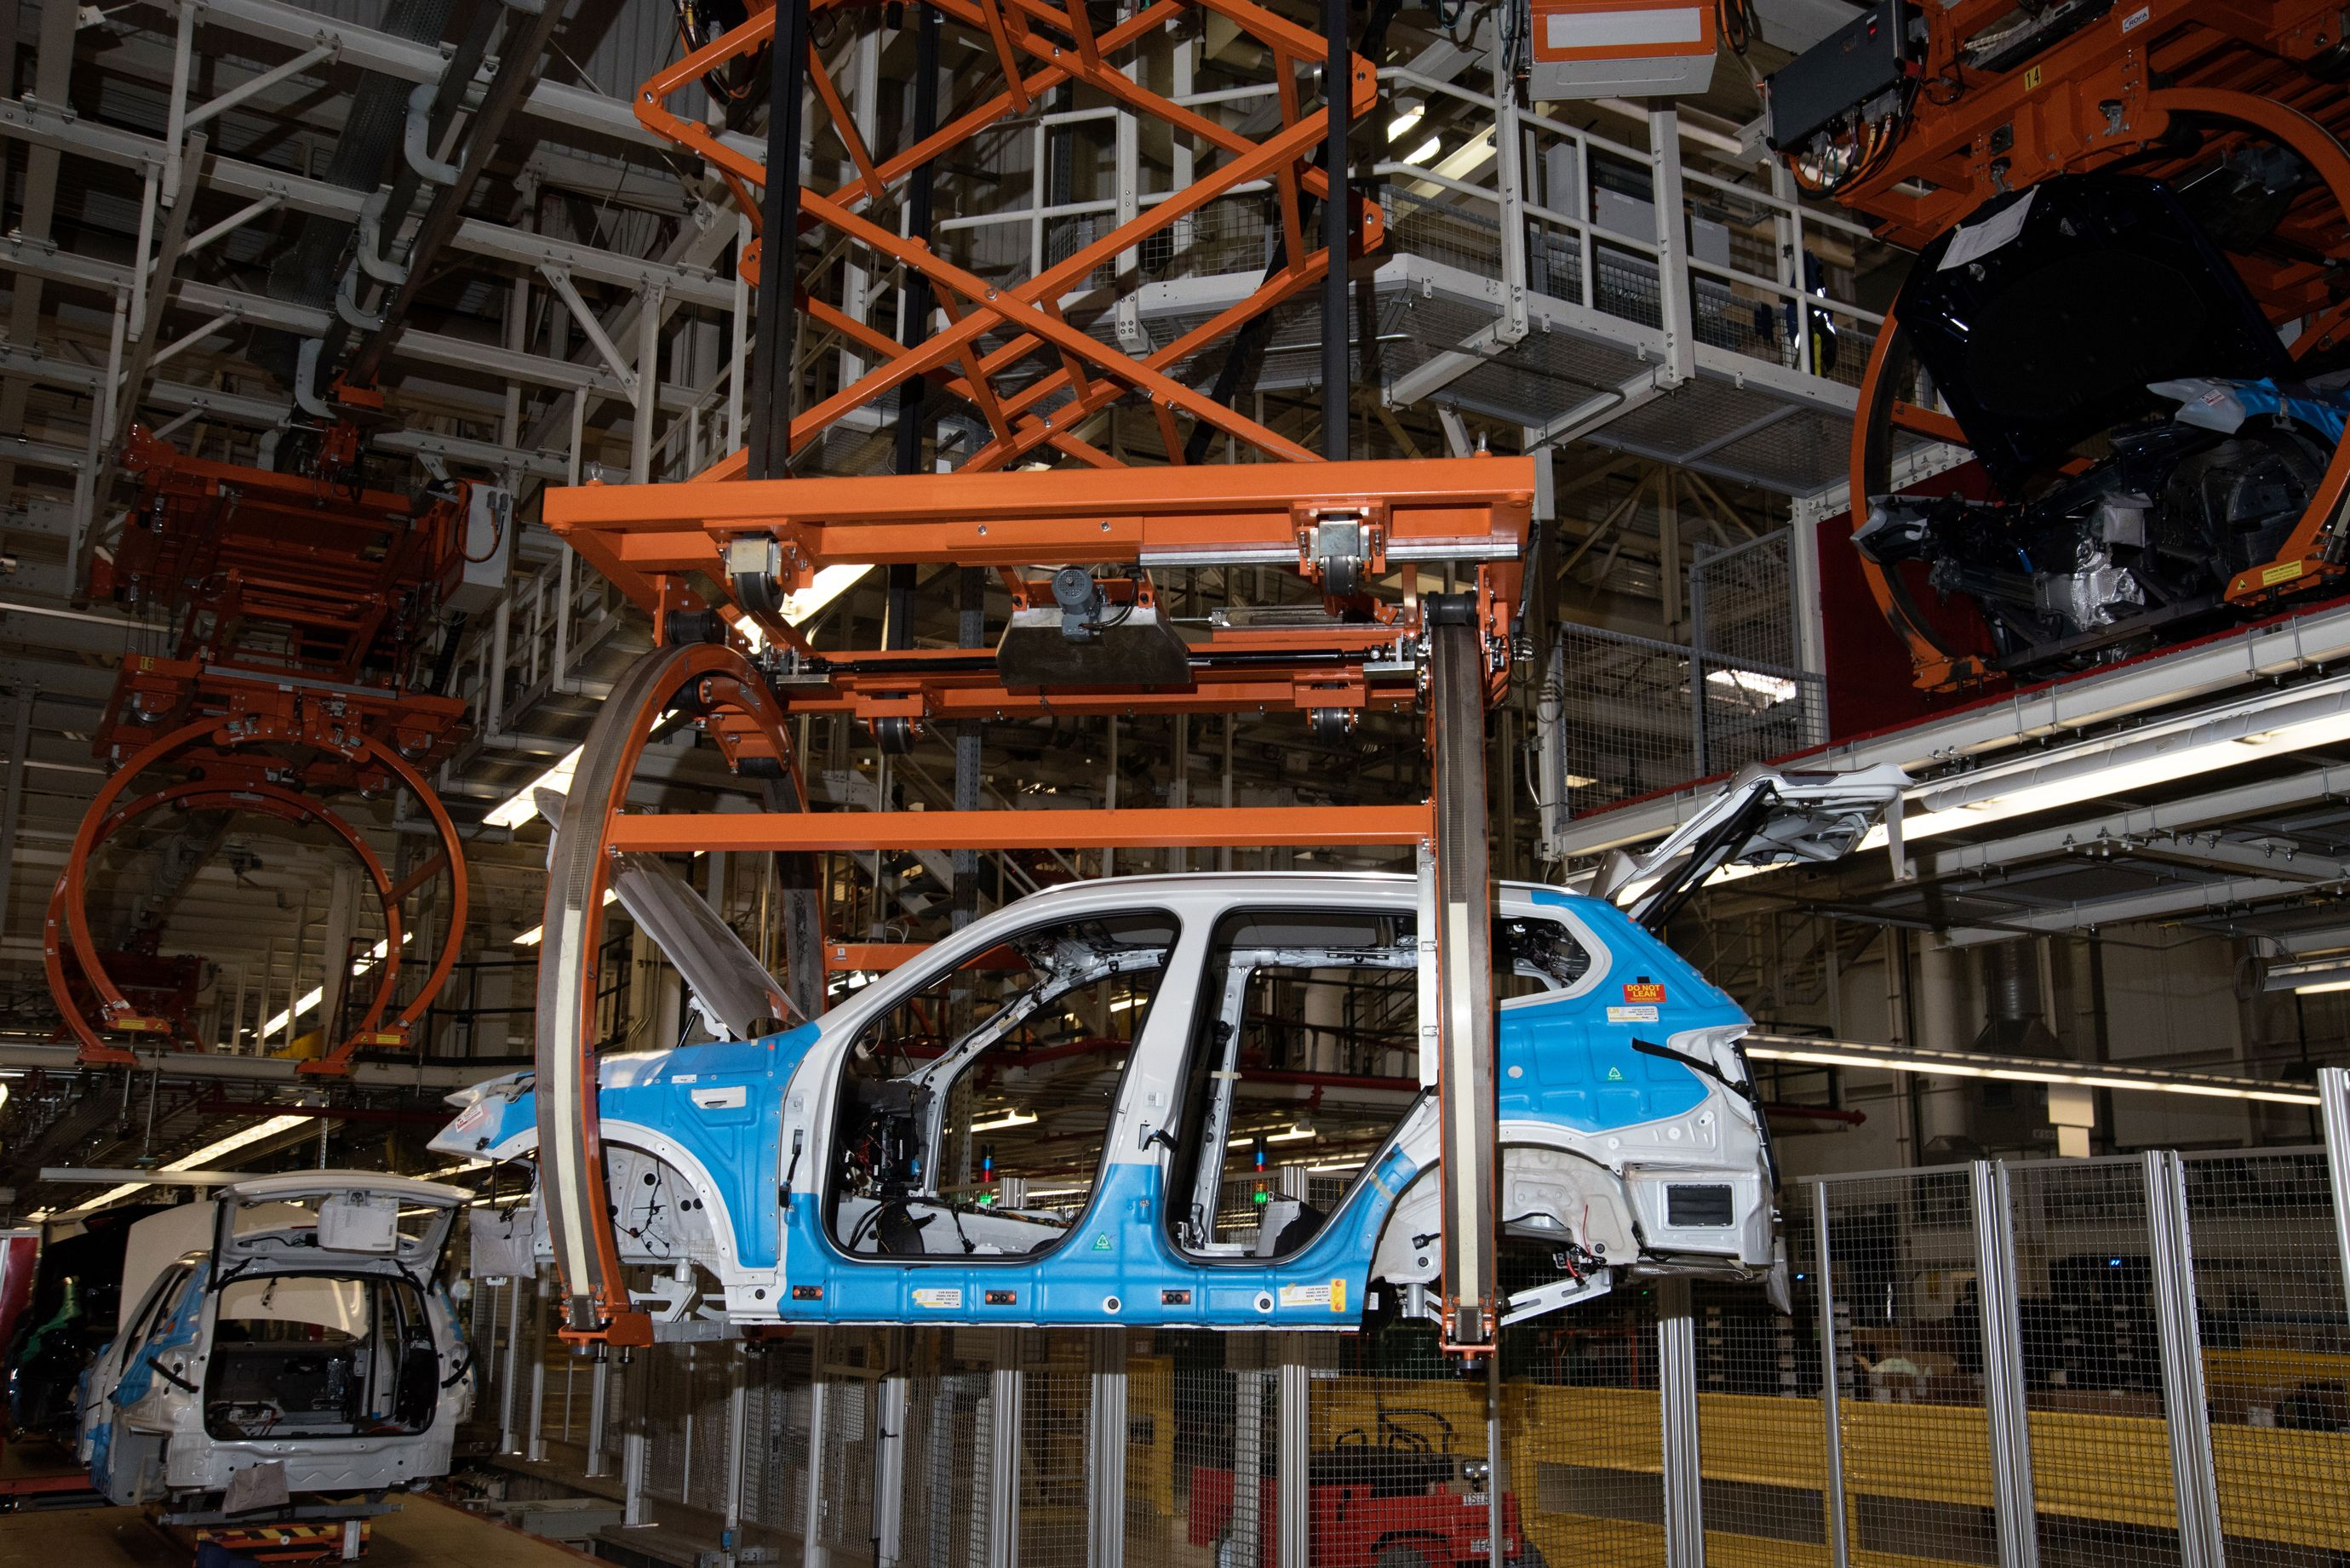 Cars are transported along the assembly line on a conveyor system. (7 of 7)